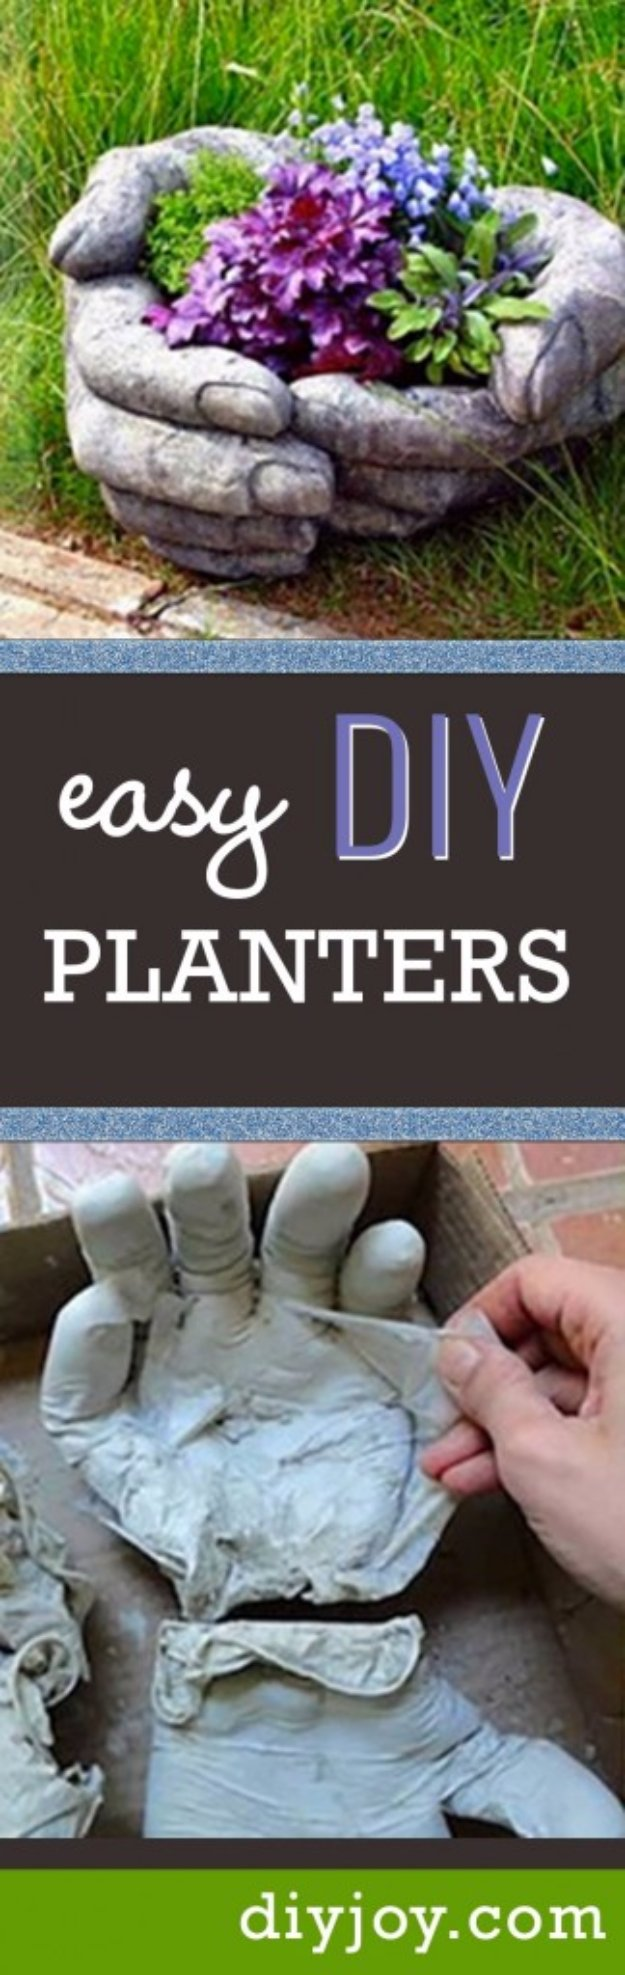 DIY Ideas for Your Garden - DIY Concrete Hand Planters - Cool Projects for Spring and Summer Gardening - Planters, Rocks, Markers and Handmade Decor for Outdoor Gardens